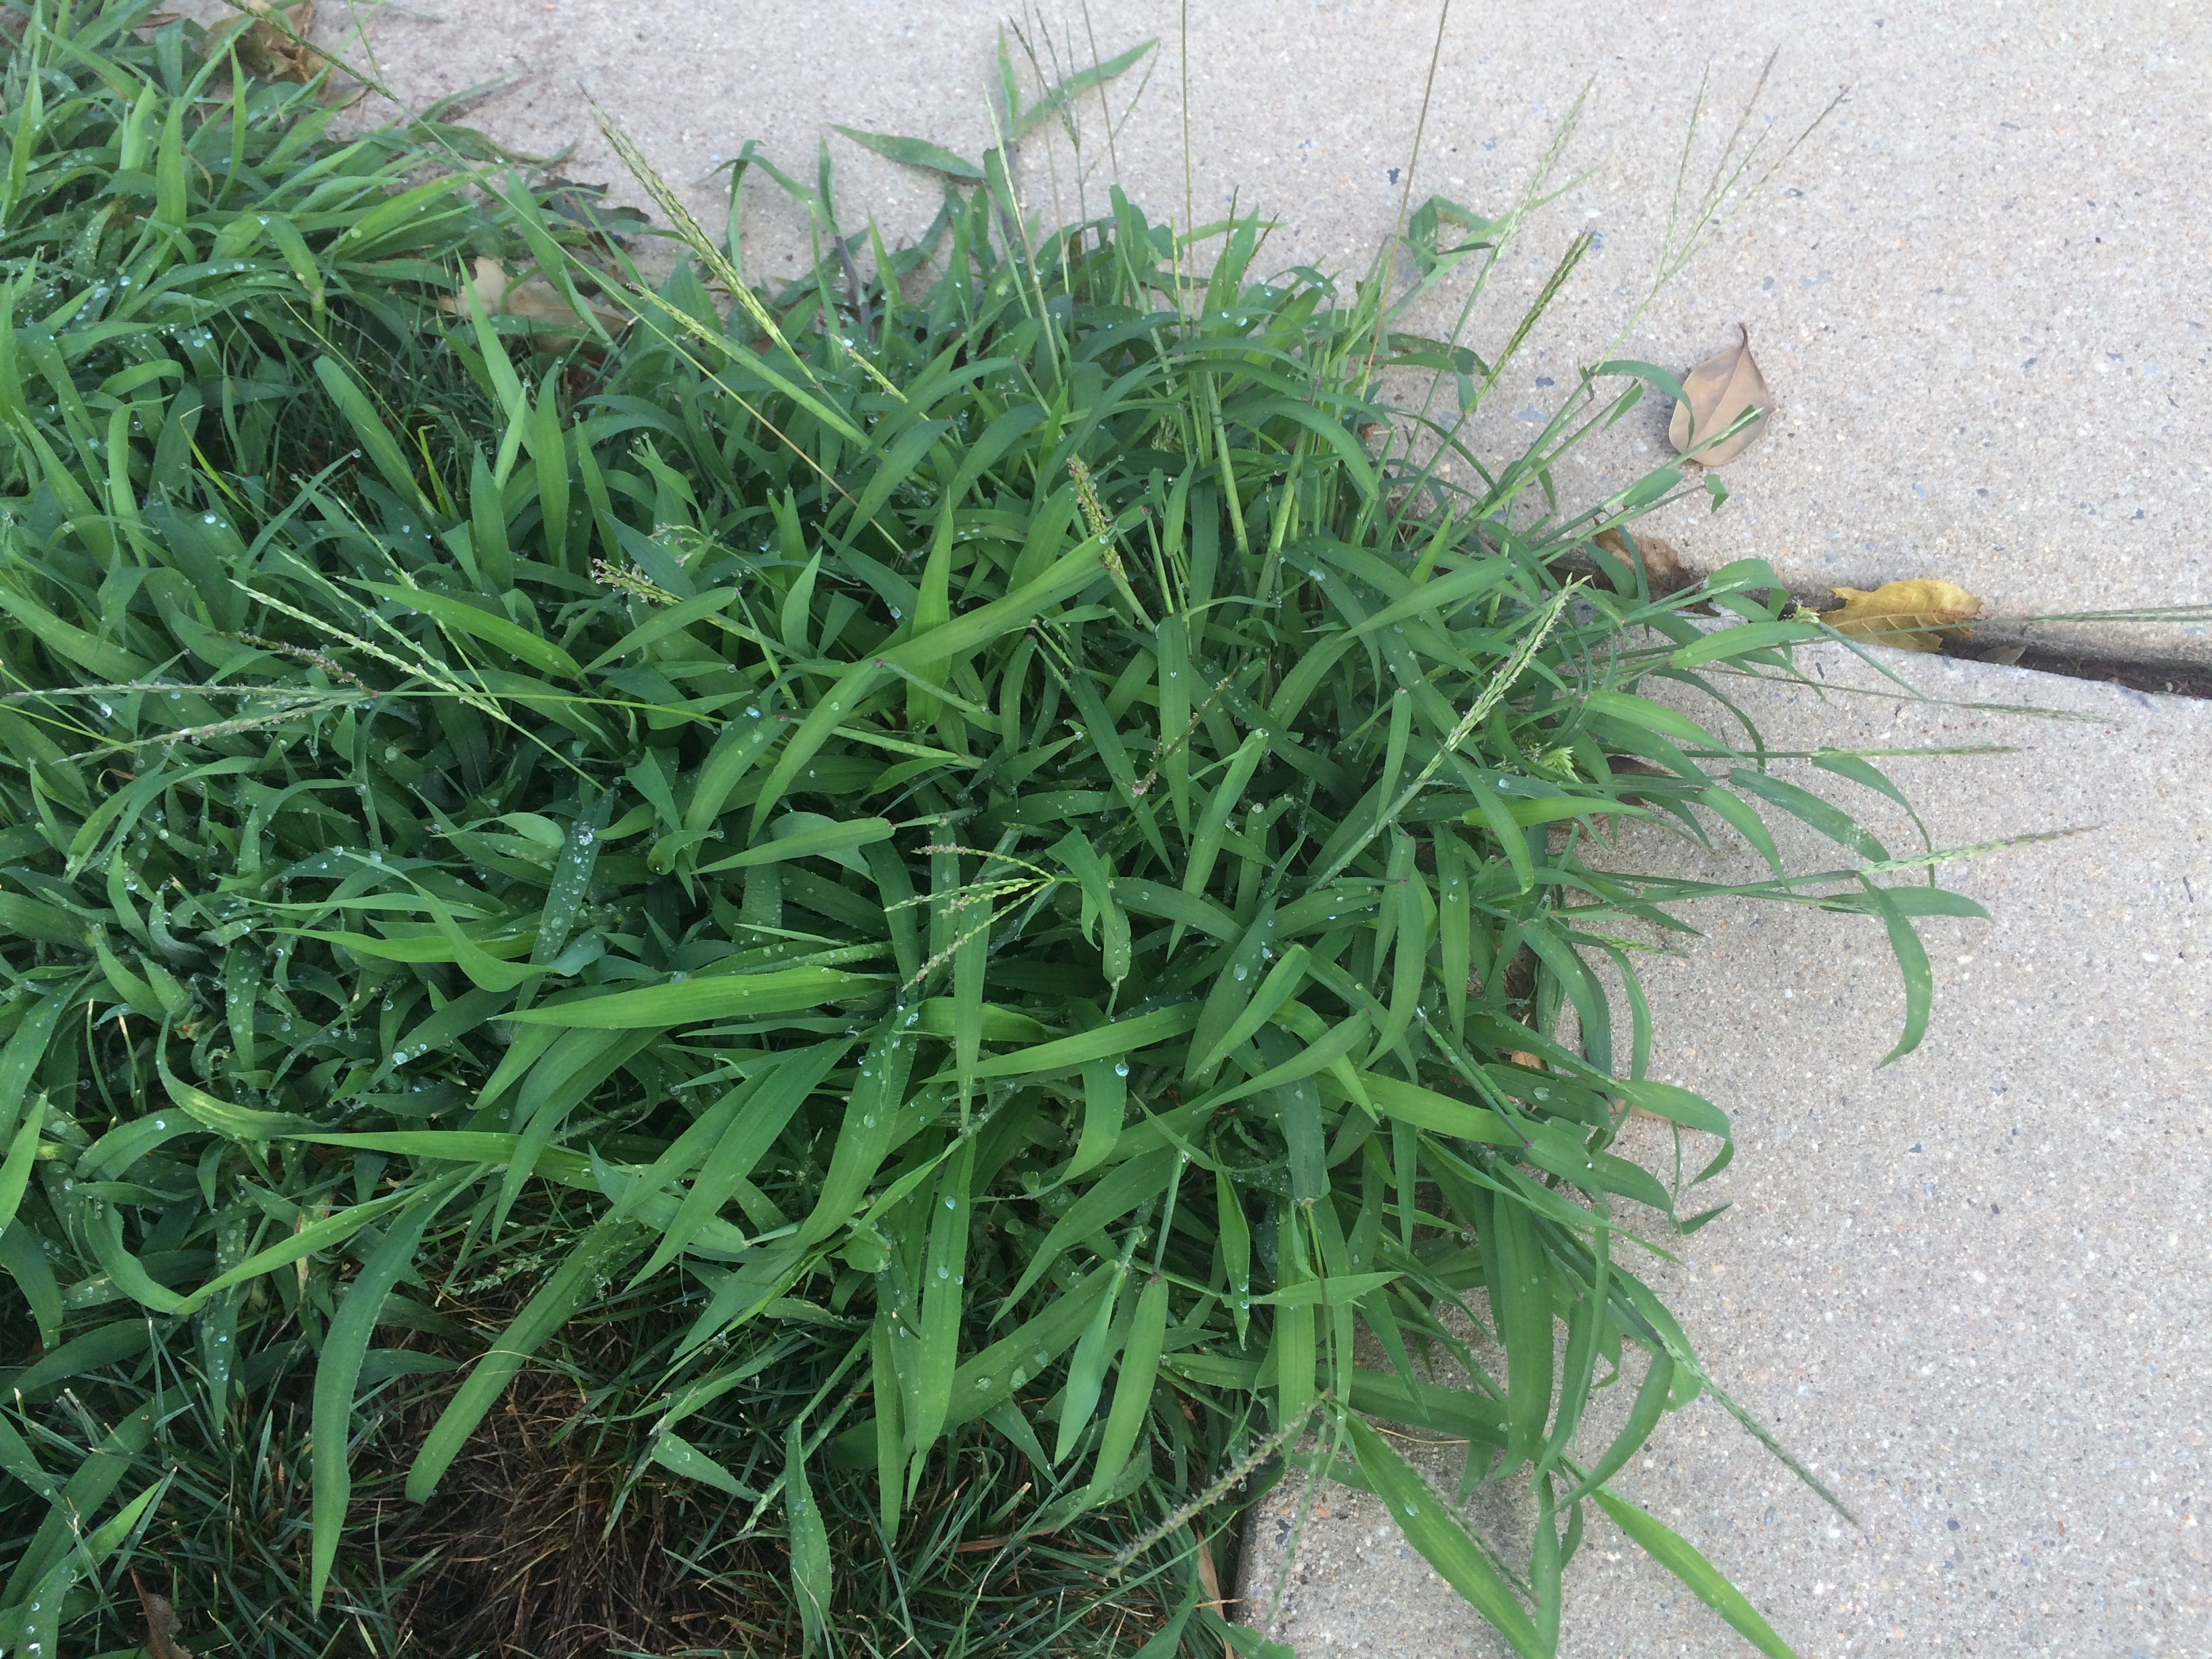 Common Texas Lawn Insects, Diseases & Weeds Every Property